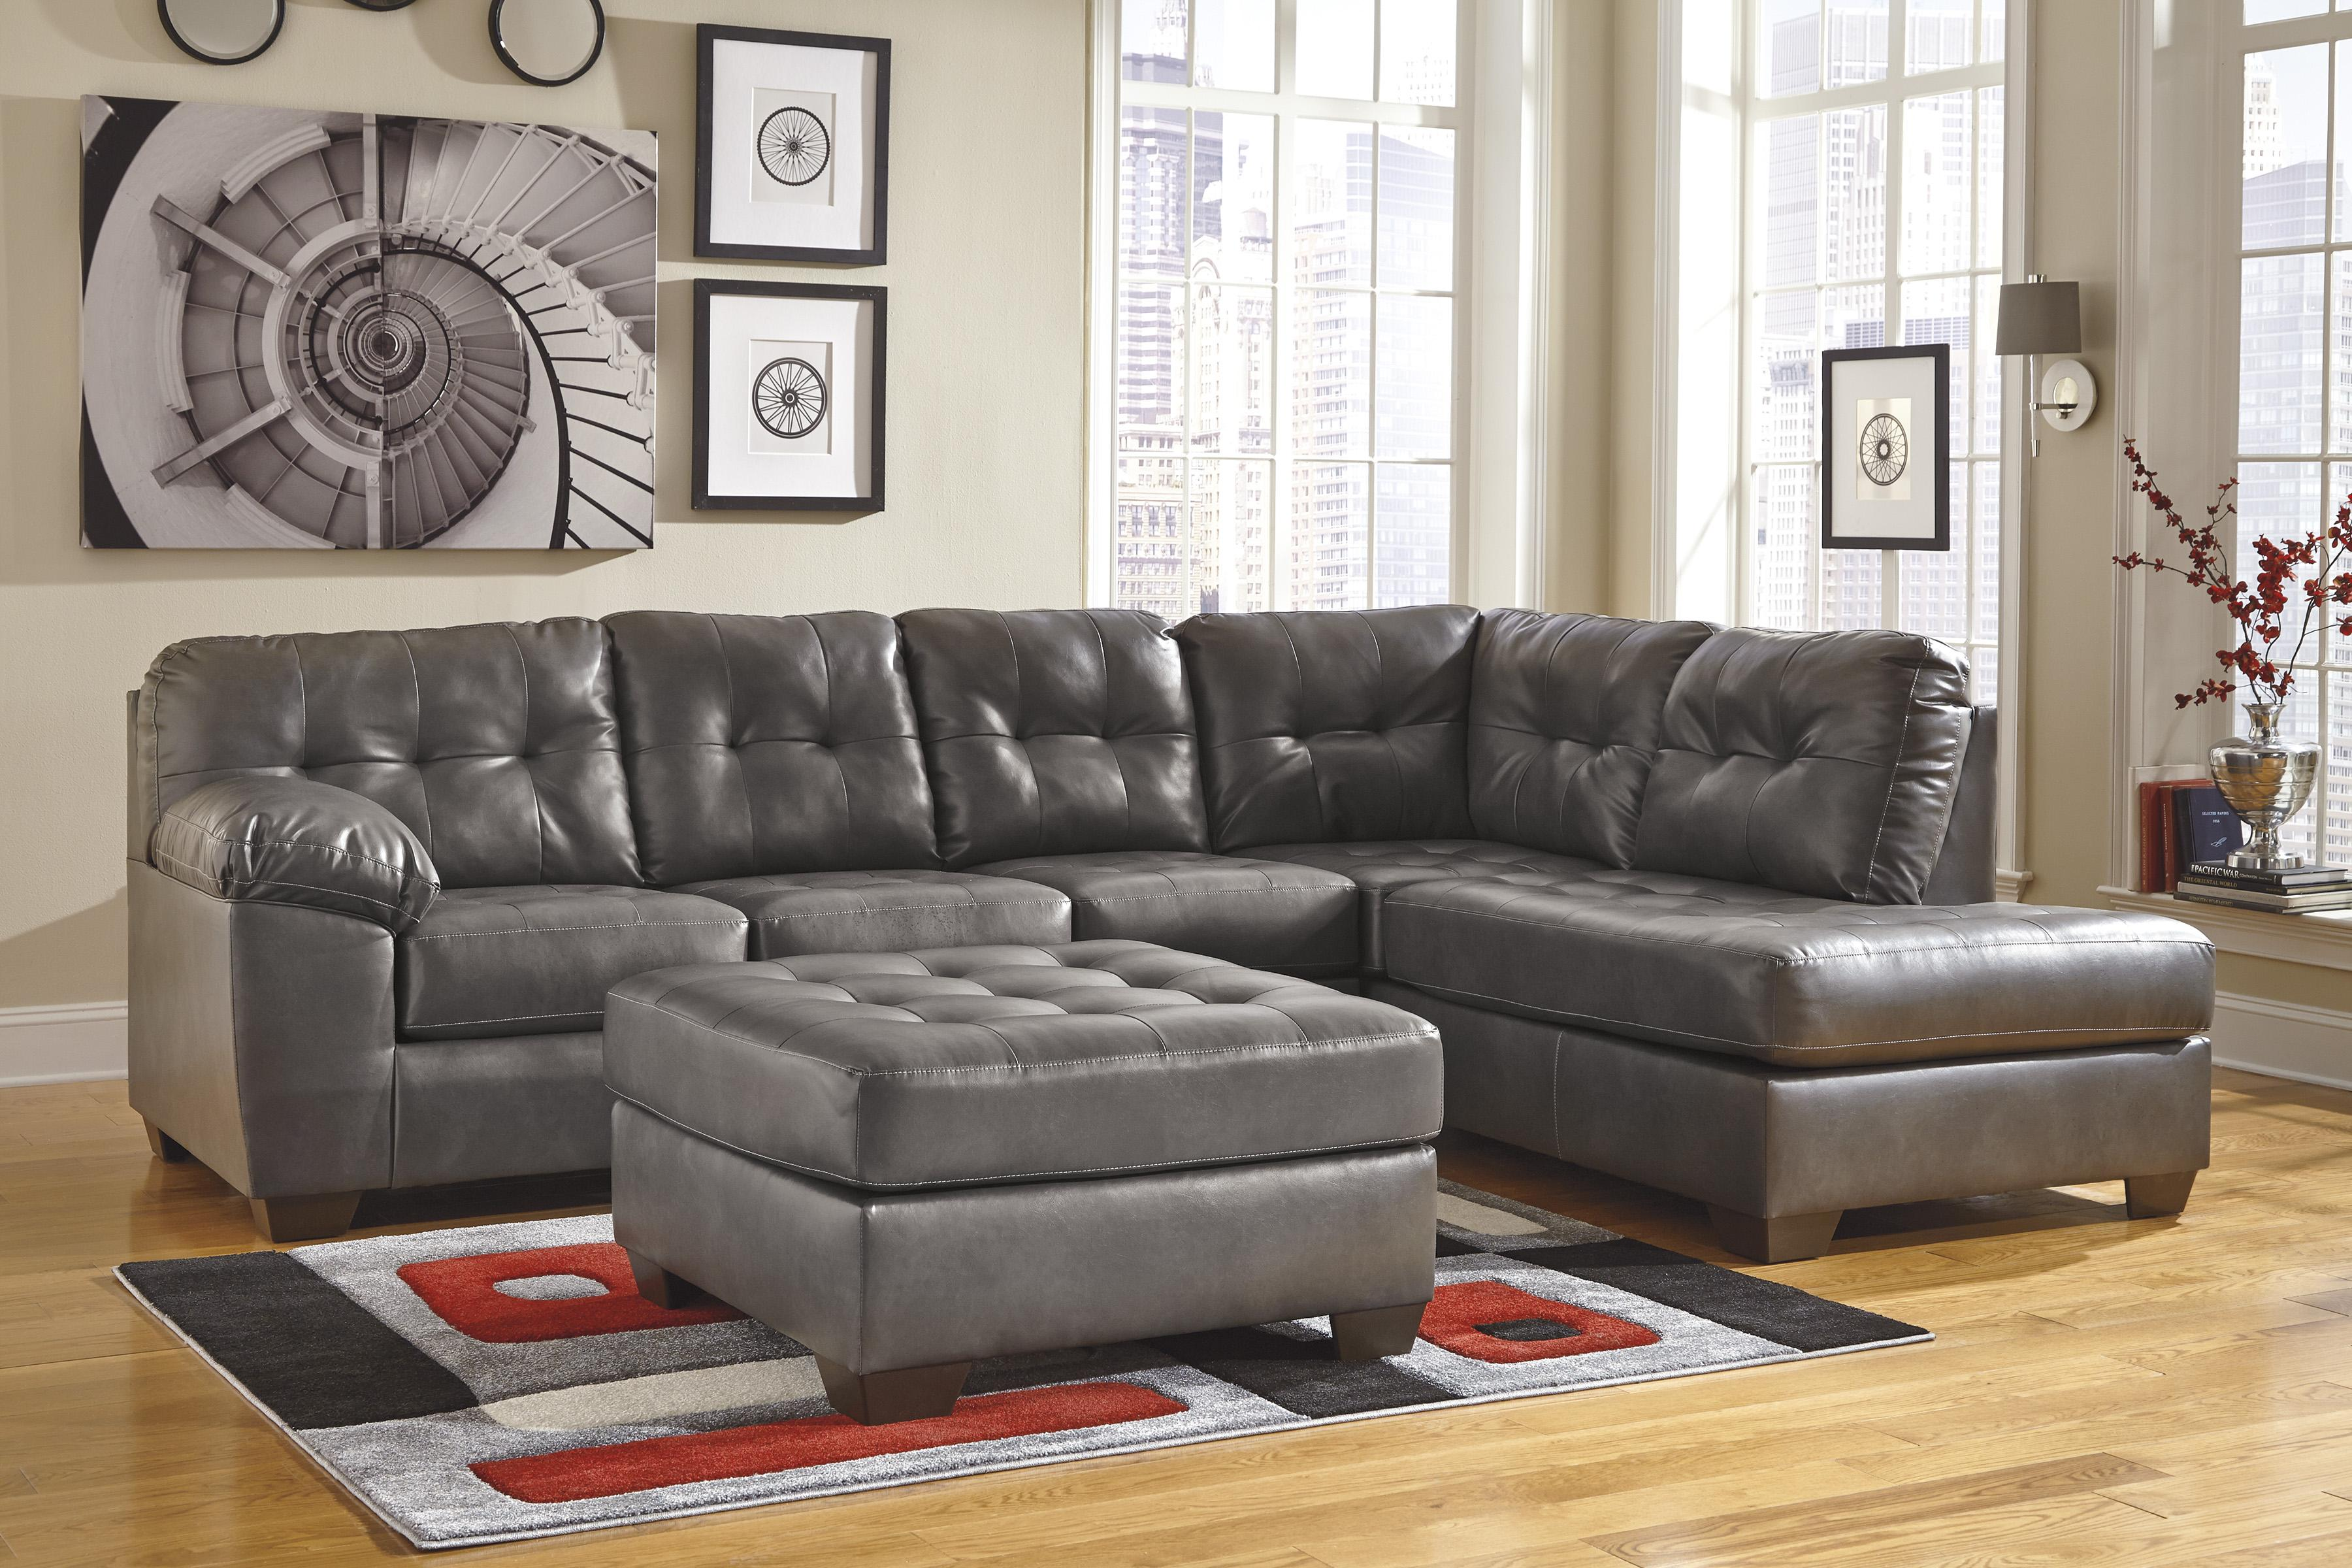 Alliston DuraBlend® - Gray Stationary Living Room Group by Signature Design by Ashley at Catalog Outlet